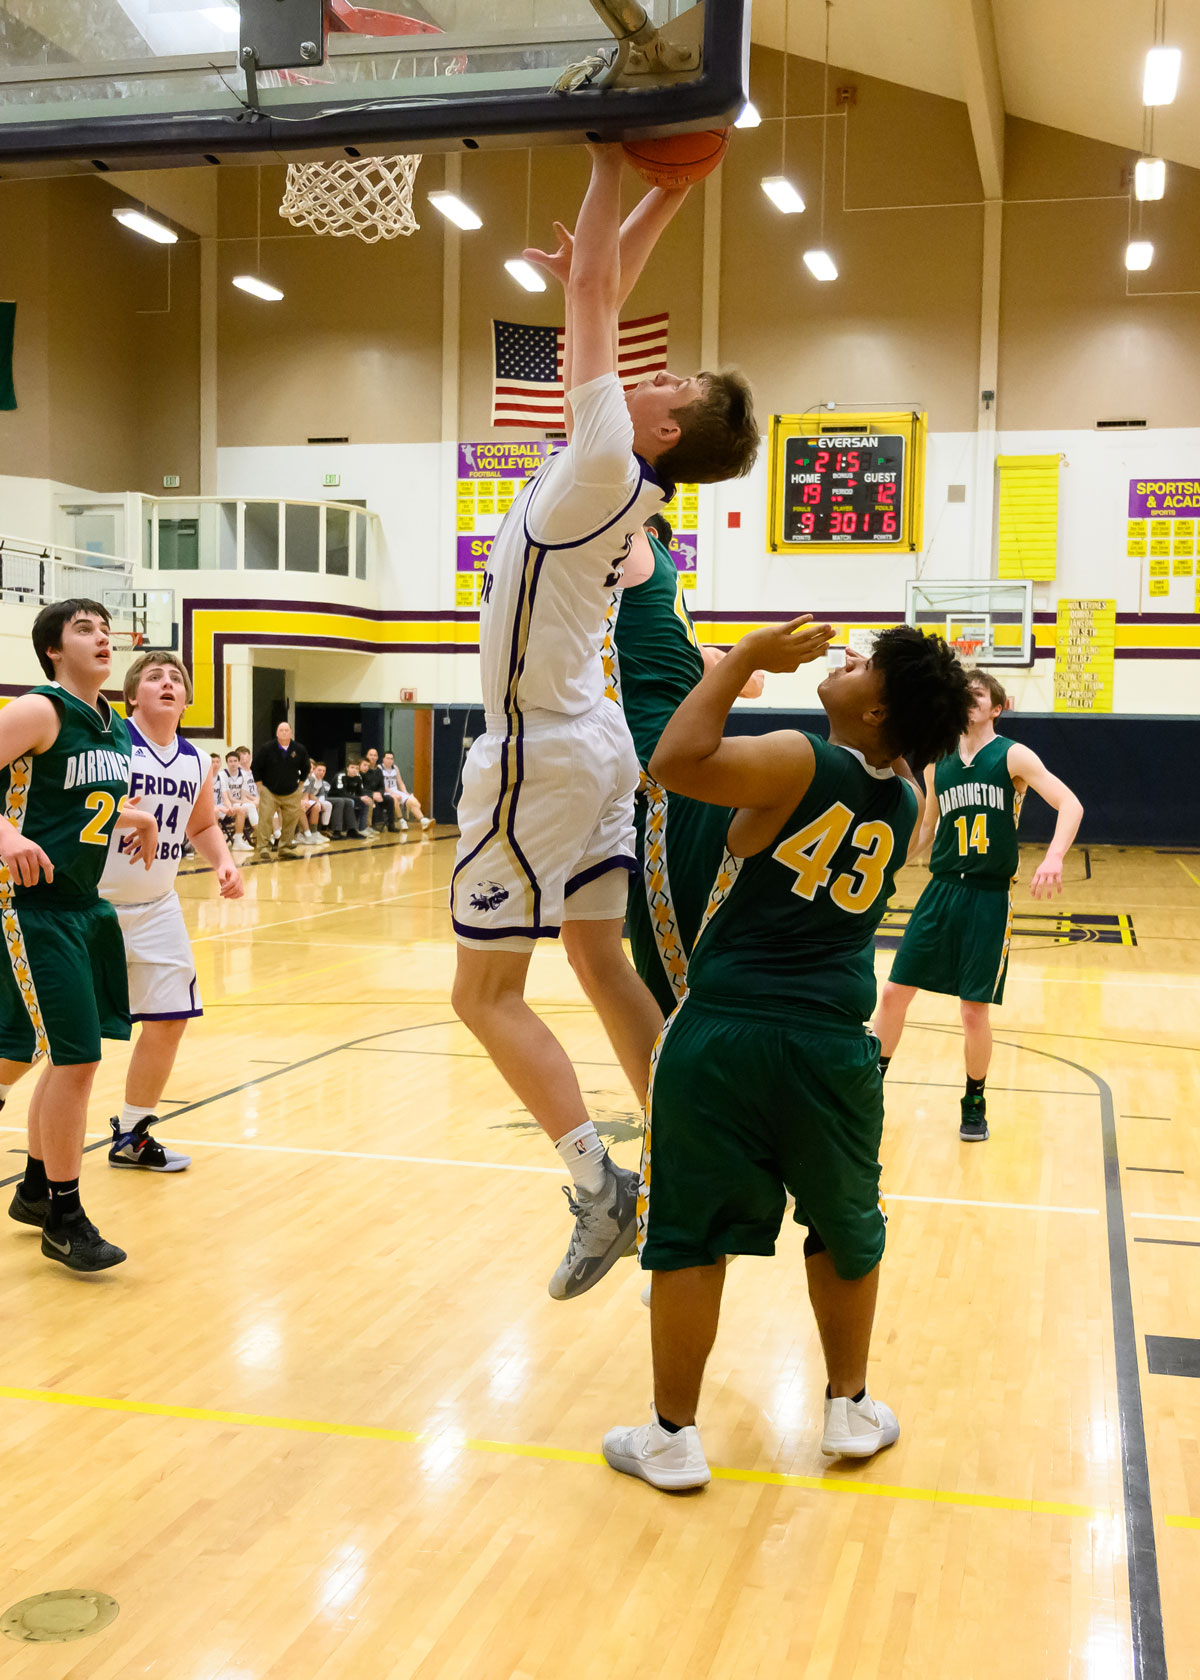 boys-basketball-1316.jpg